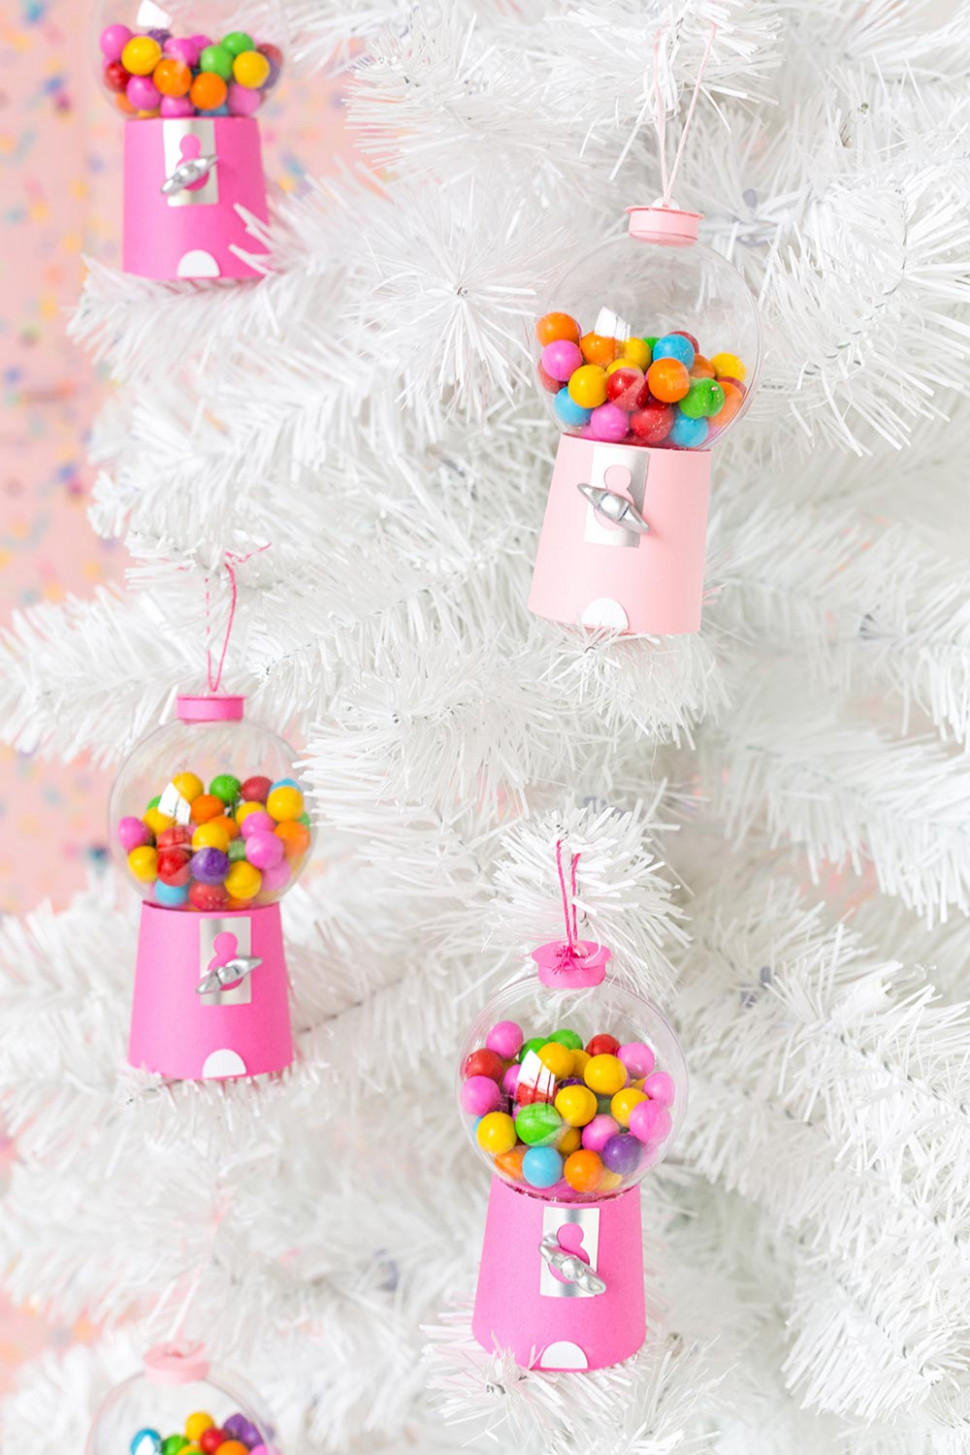 DIY Candyland Christmas Decorations & Ornaments • The Budget ..